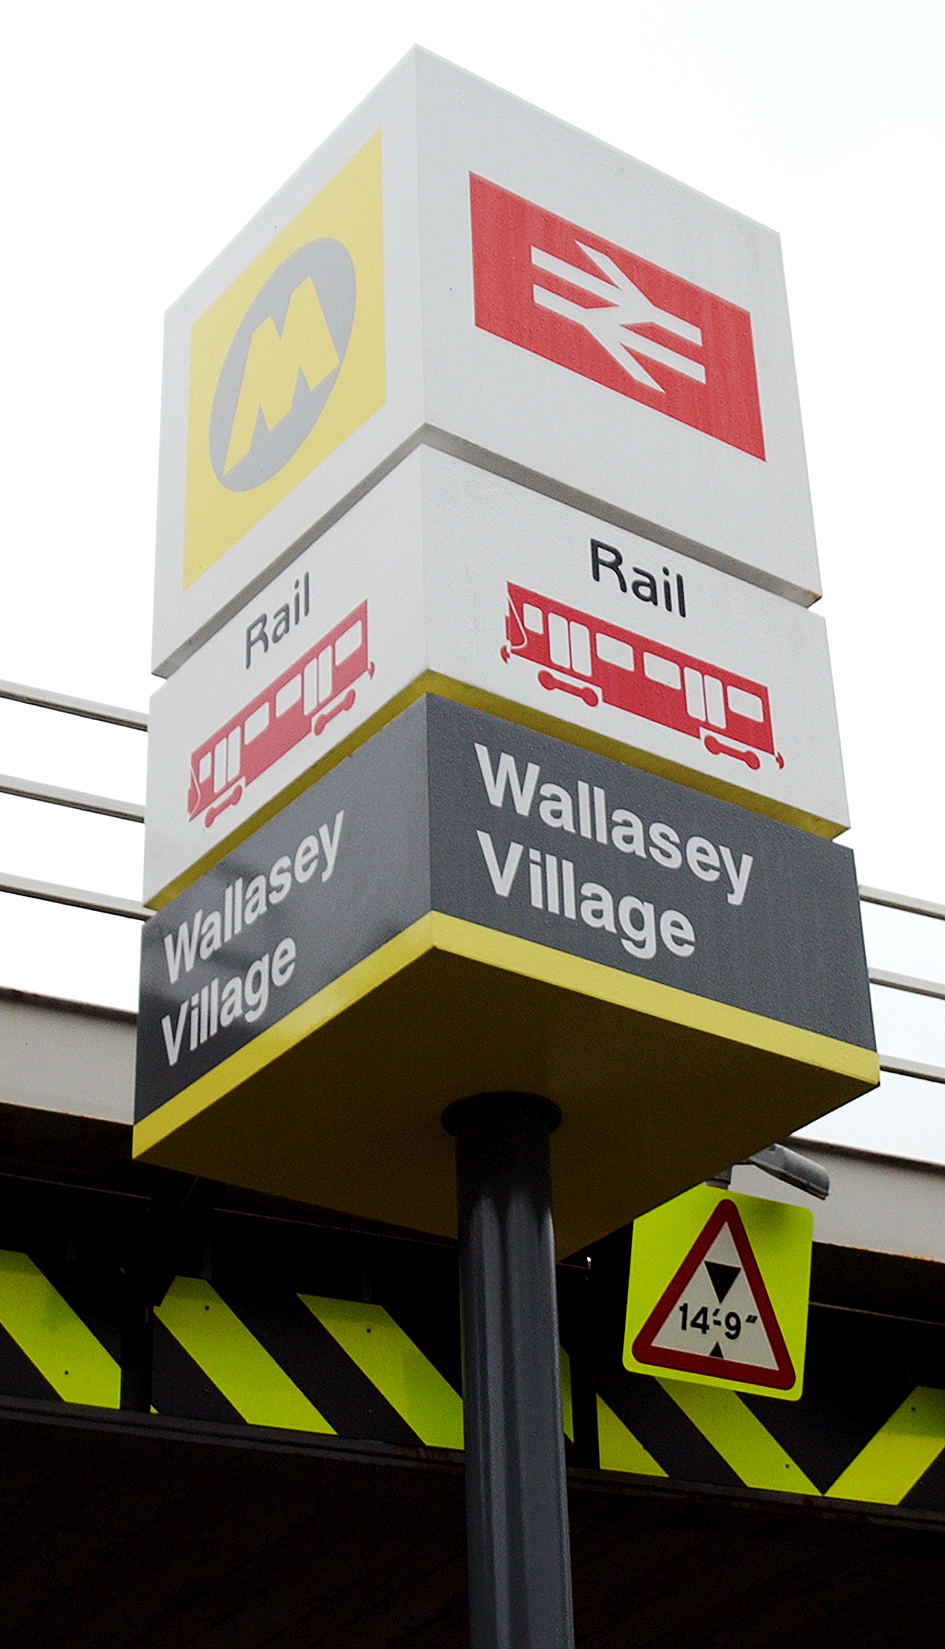 WALLASEY VILLAGE: Survey found this was one of the worst stations in North West